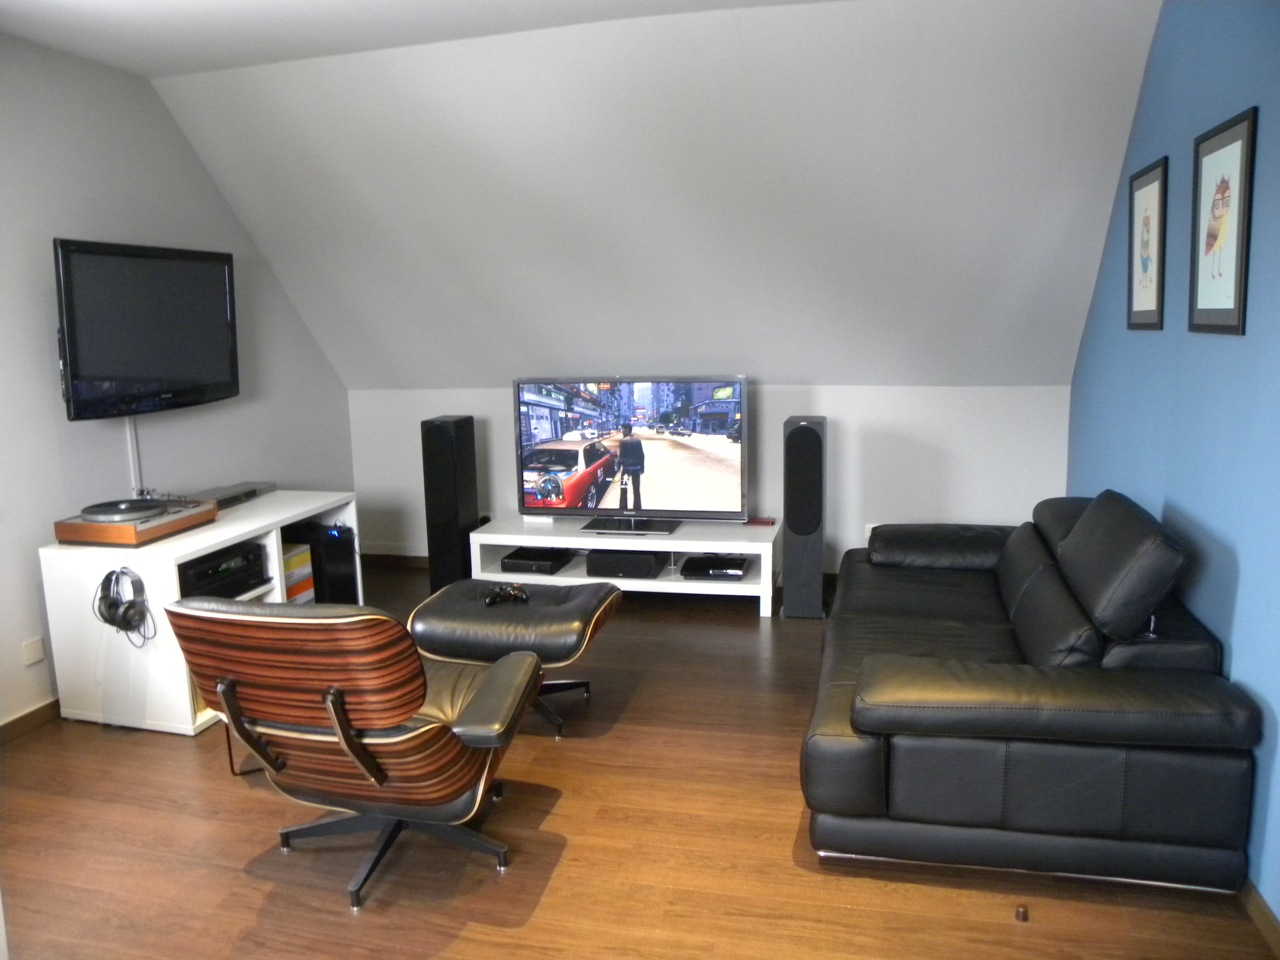 If you have a game room or recreation area in your home, it's important to have good lighting. 15 Awesome Video Game Room Design Ideas You Must See ...